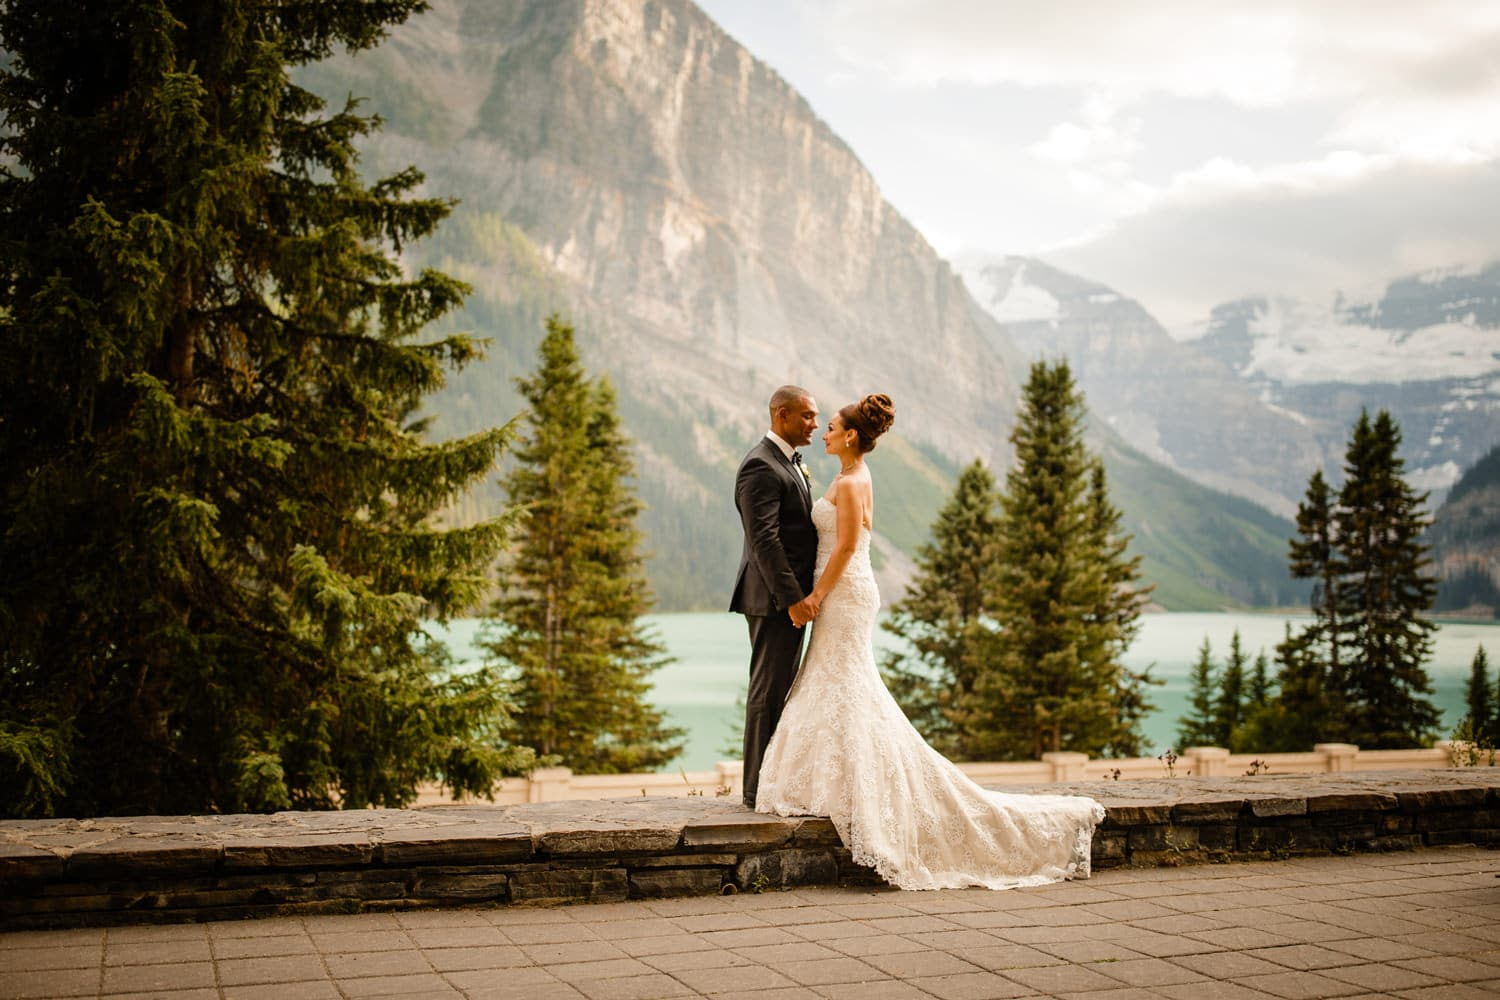 Groom and Bride on a wall located at Lake Louise with Victoria Glacier in the backgroud